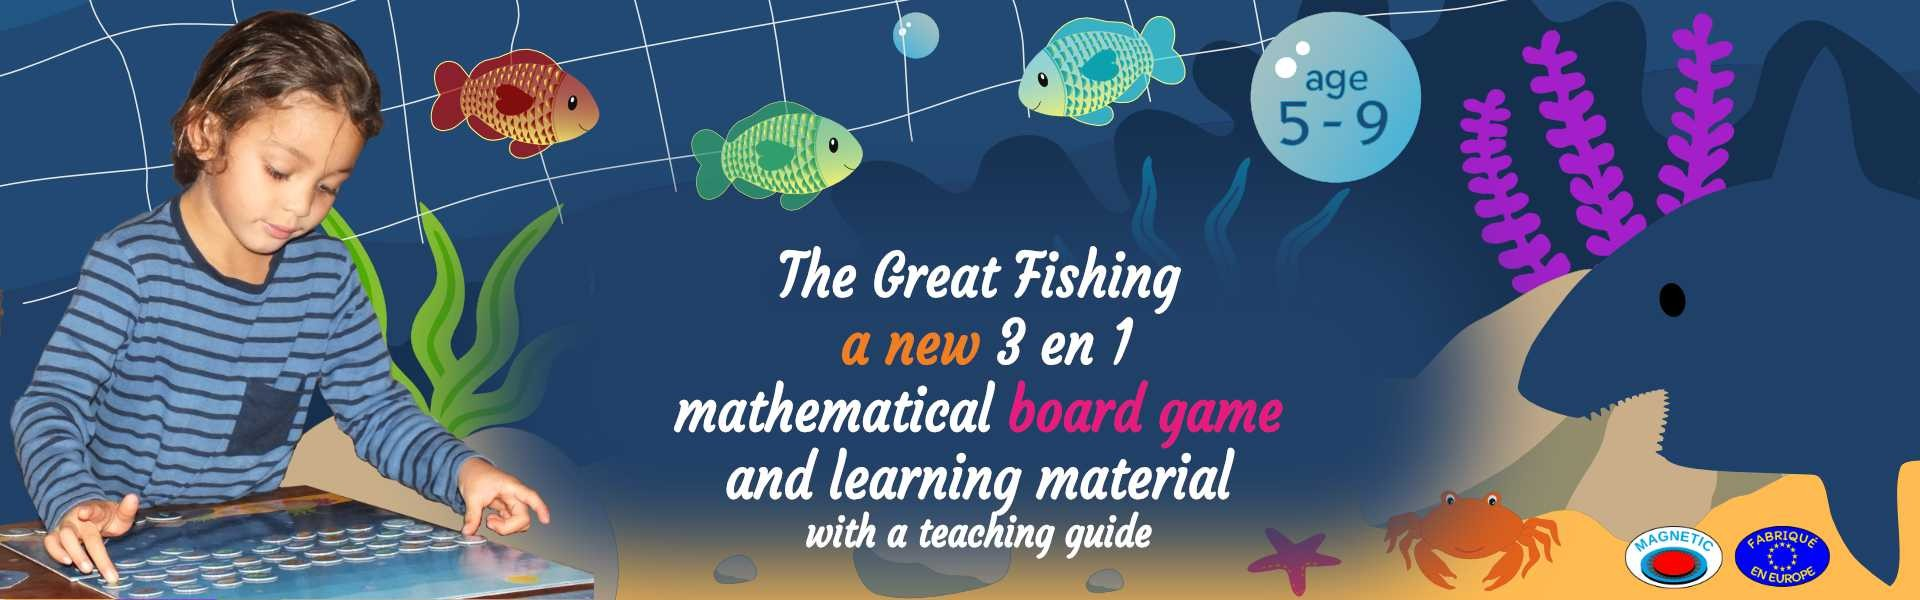 great fishing math board game for ages 5 to 9